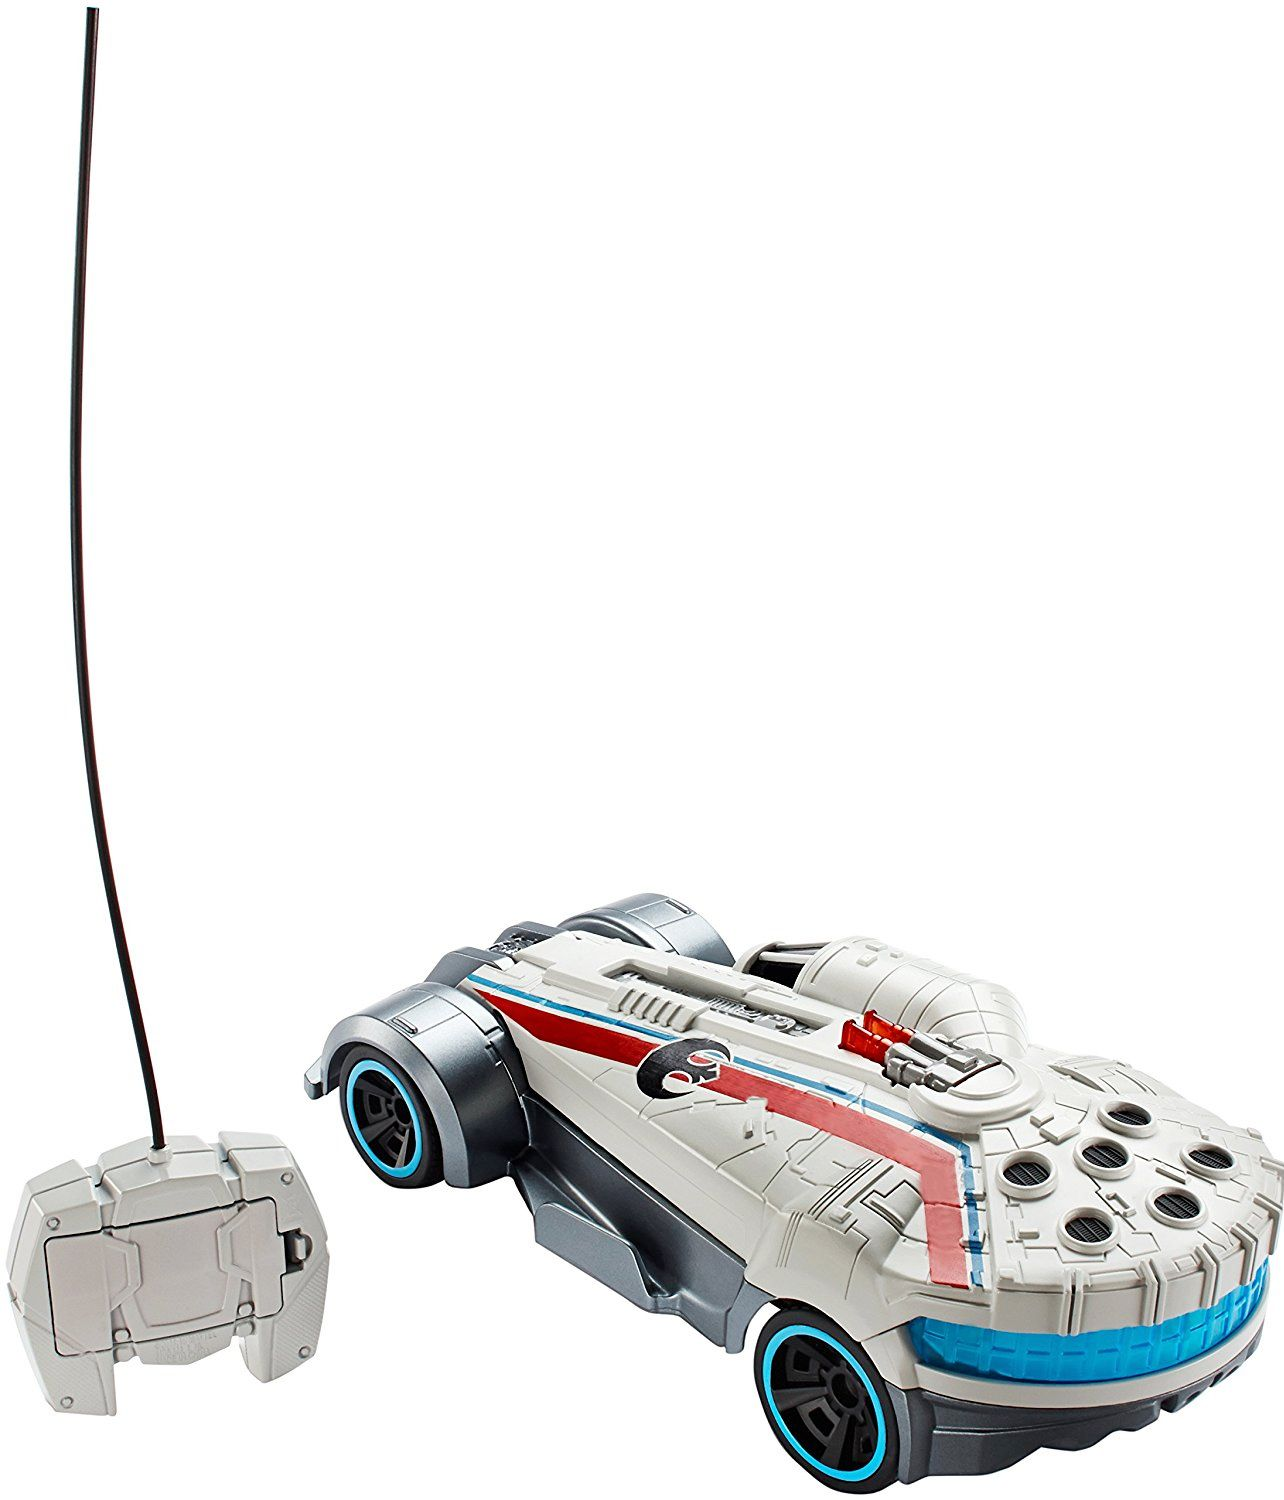 Carro-Controle-Remoto-Hot-Wheels-Star-Wars-Carships-Millenium-Falcon-Remote-Control-Vehicle-03